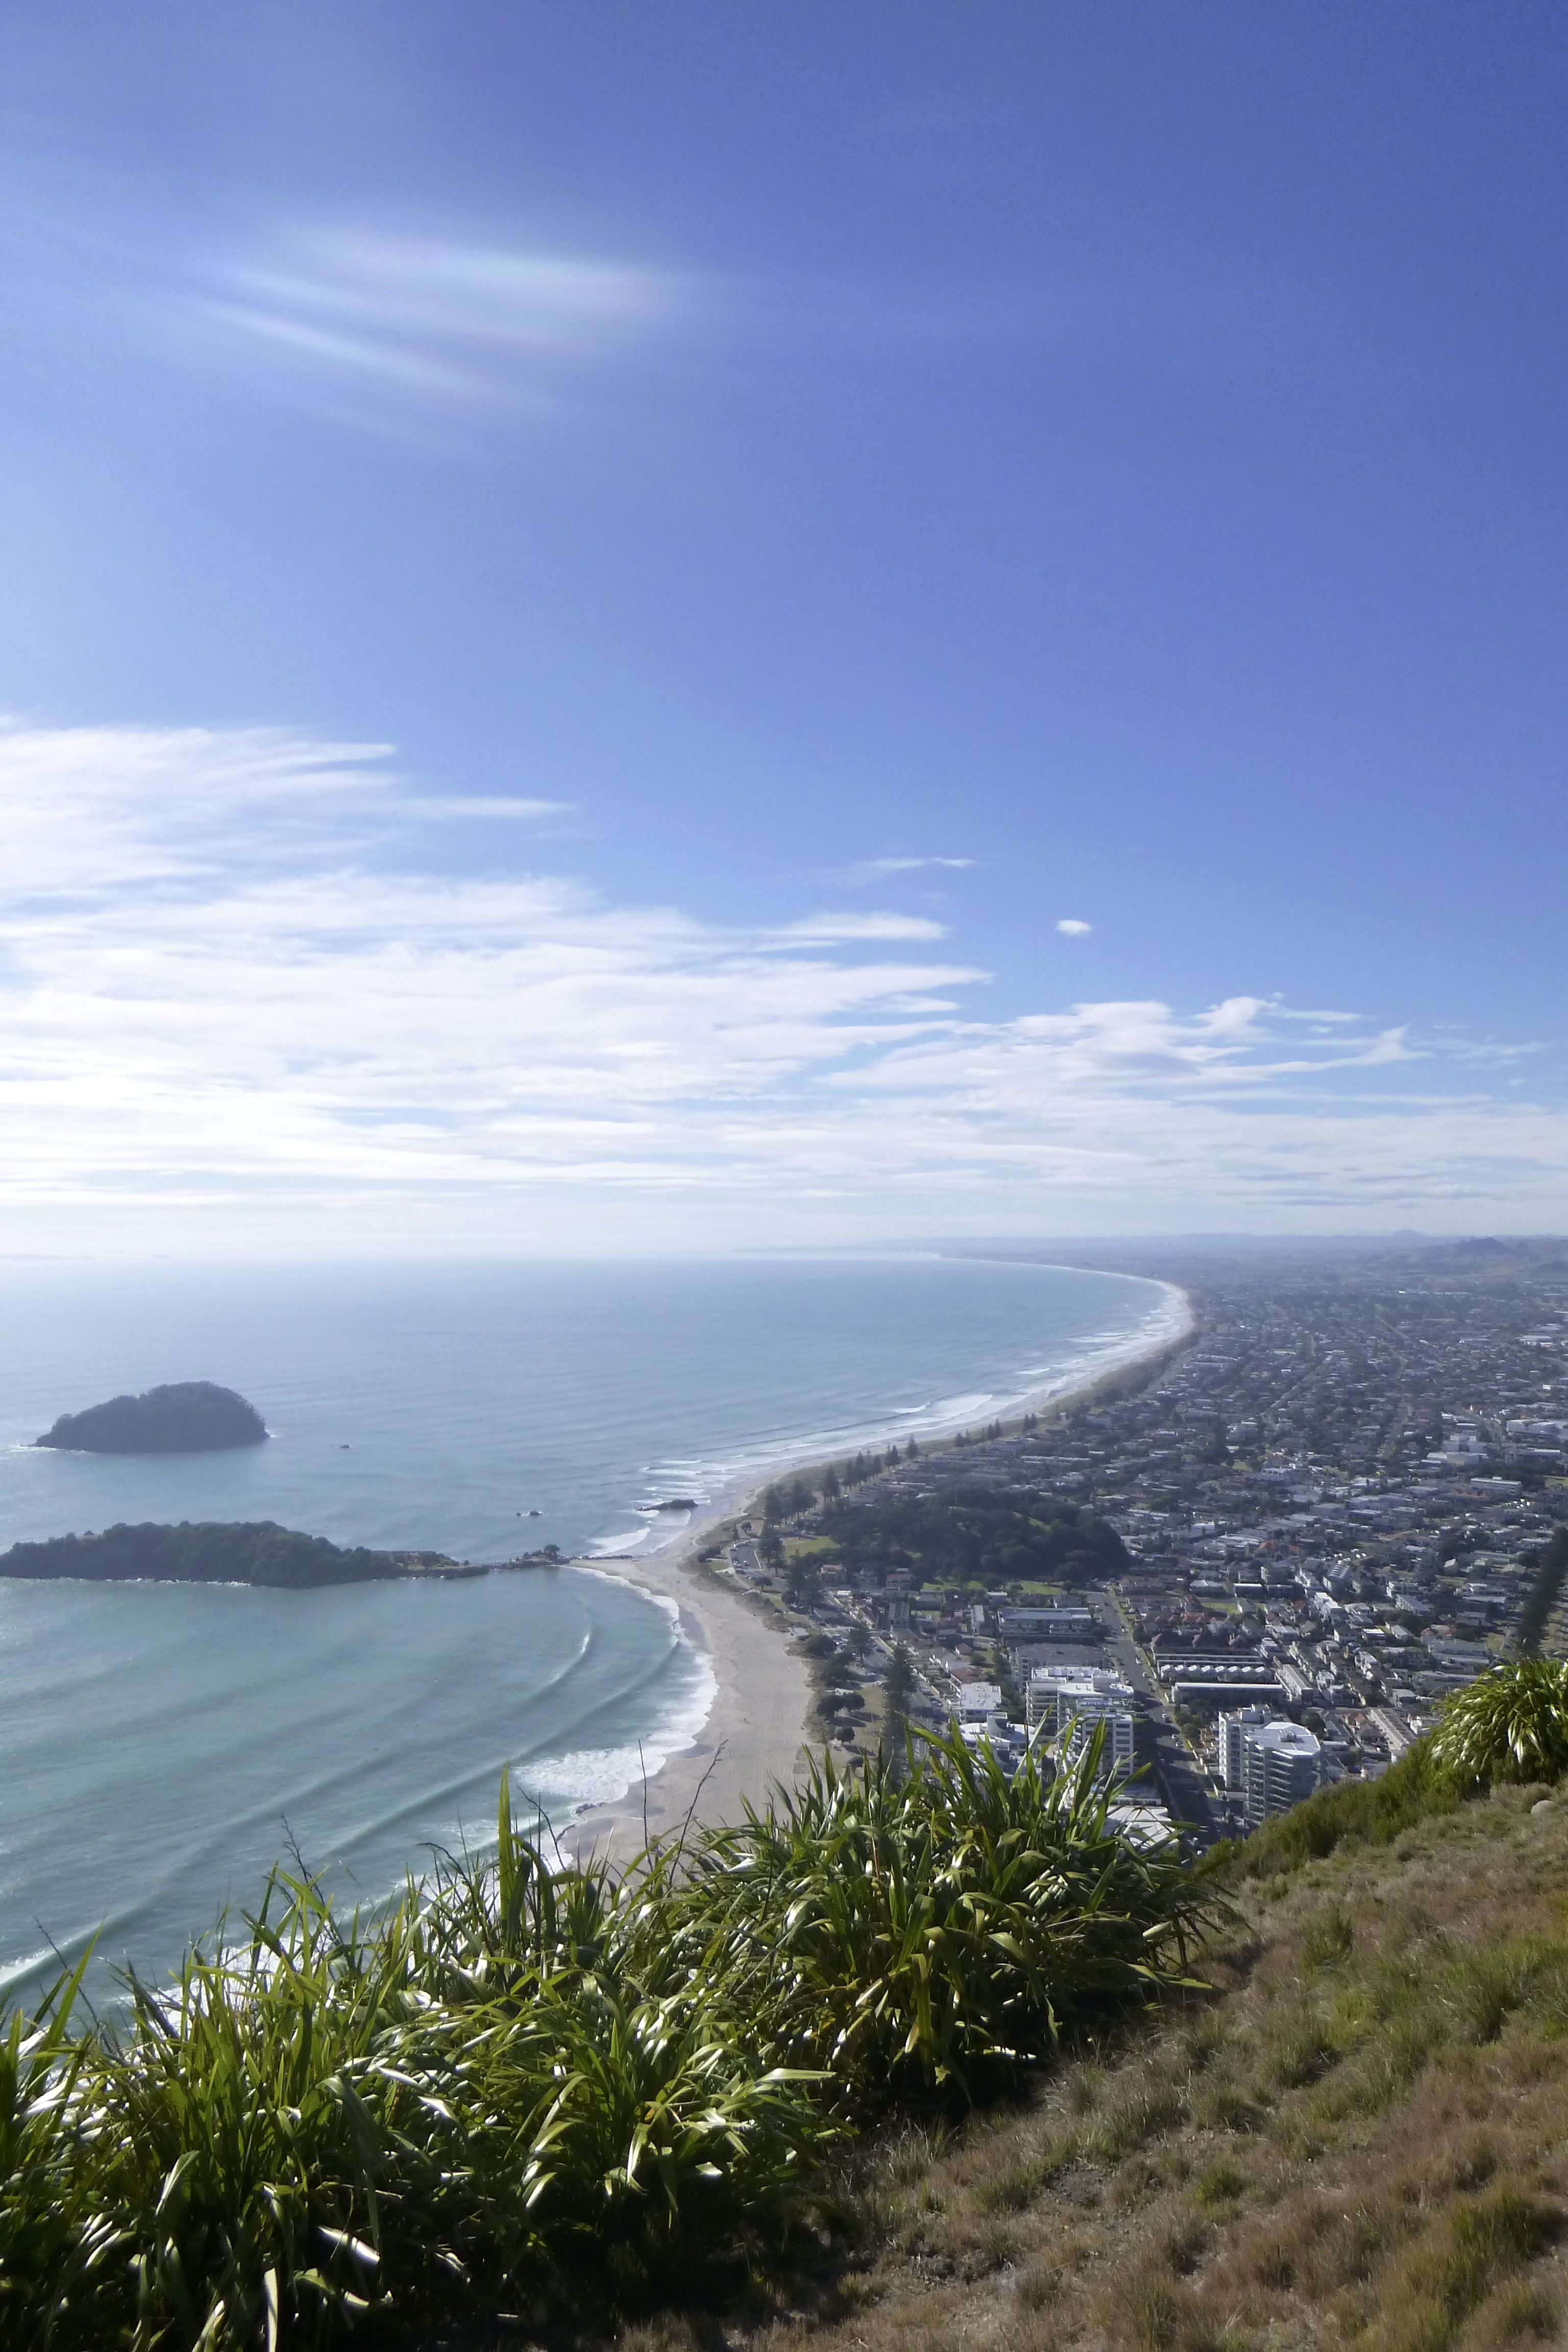 Mount Maunganui Summit its a 30min1hr walk up and this